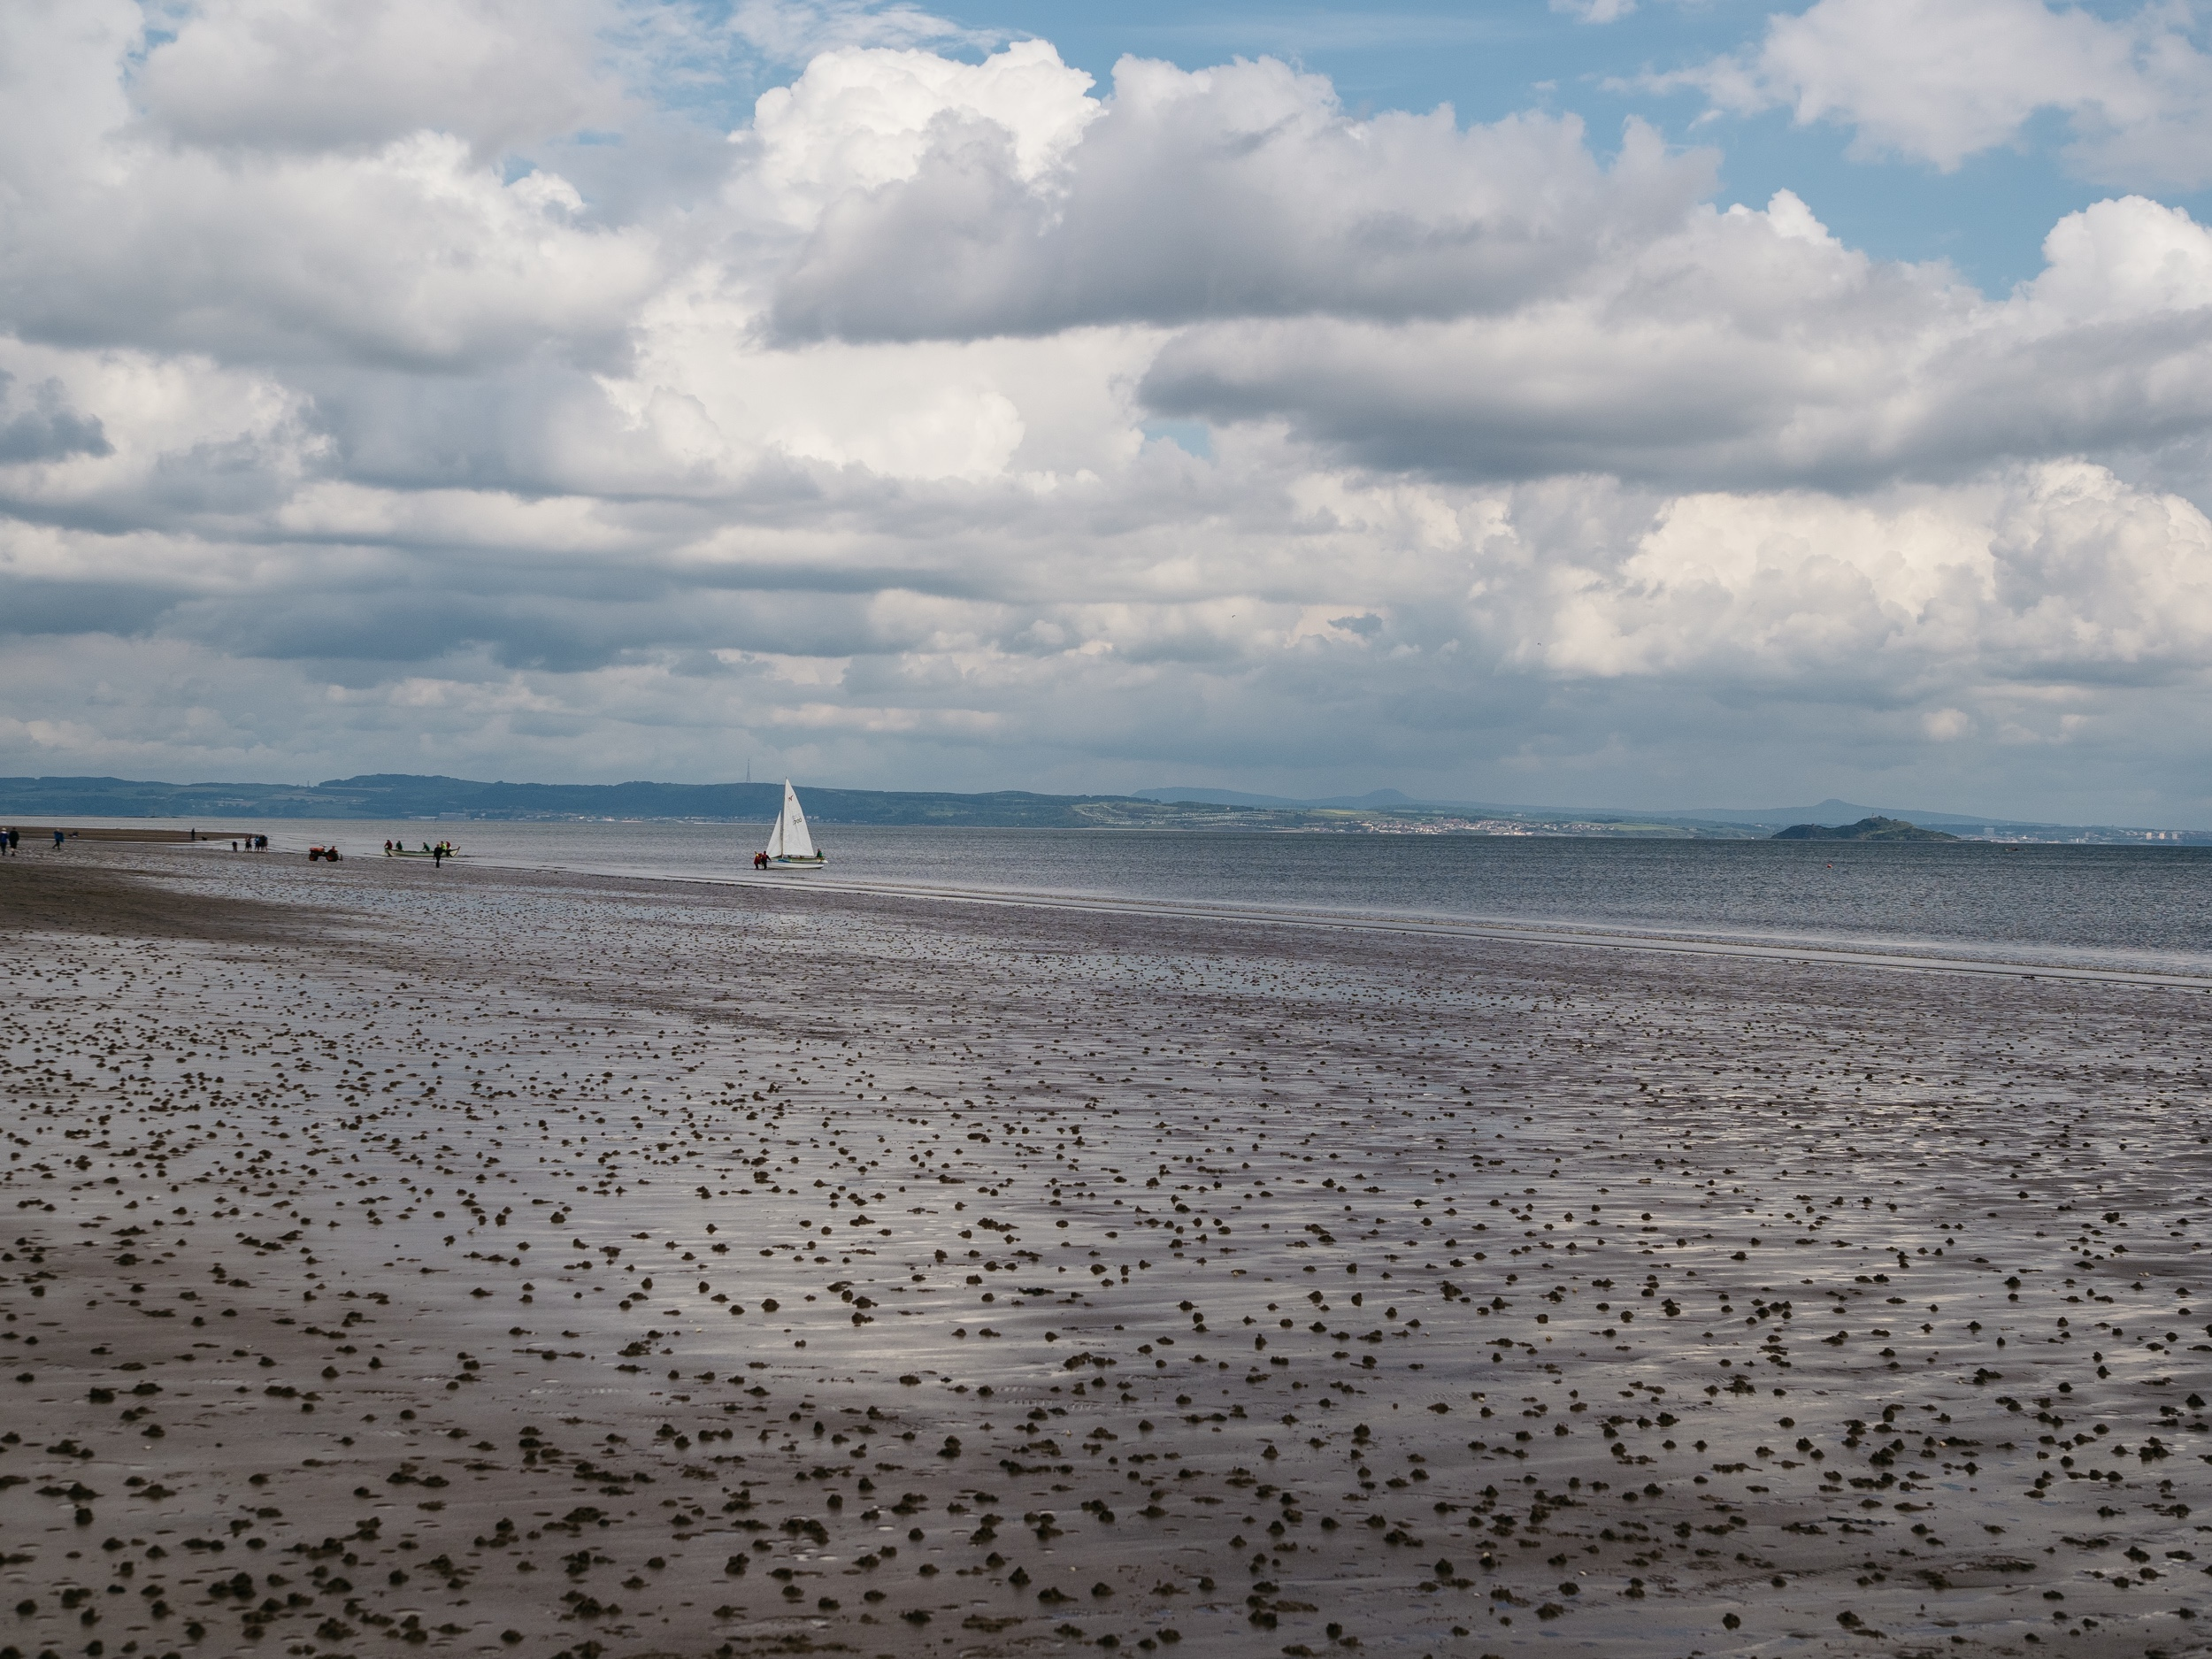 Portobello Beach, looking towards Inverness